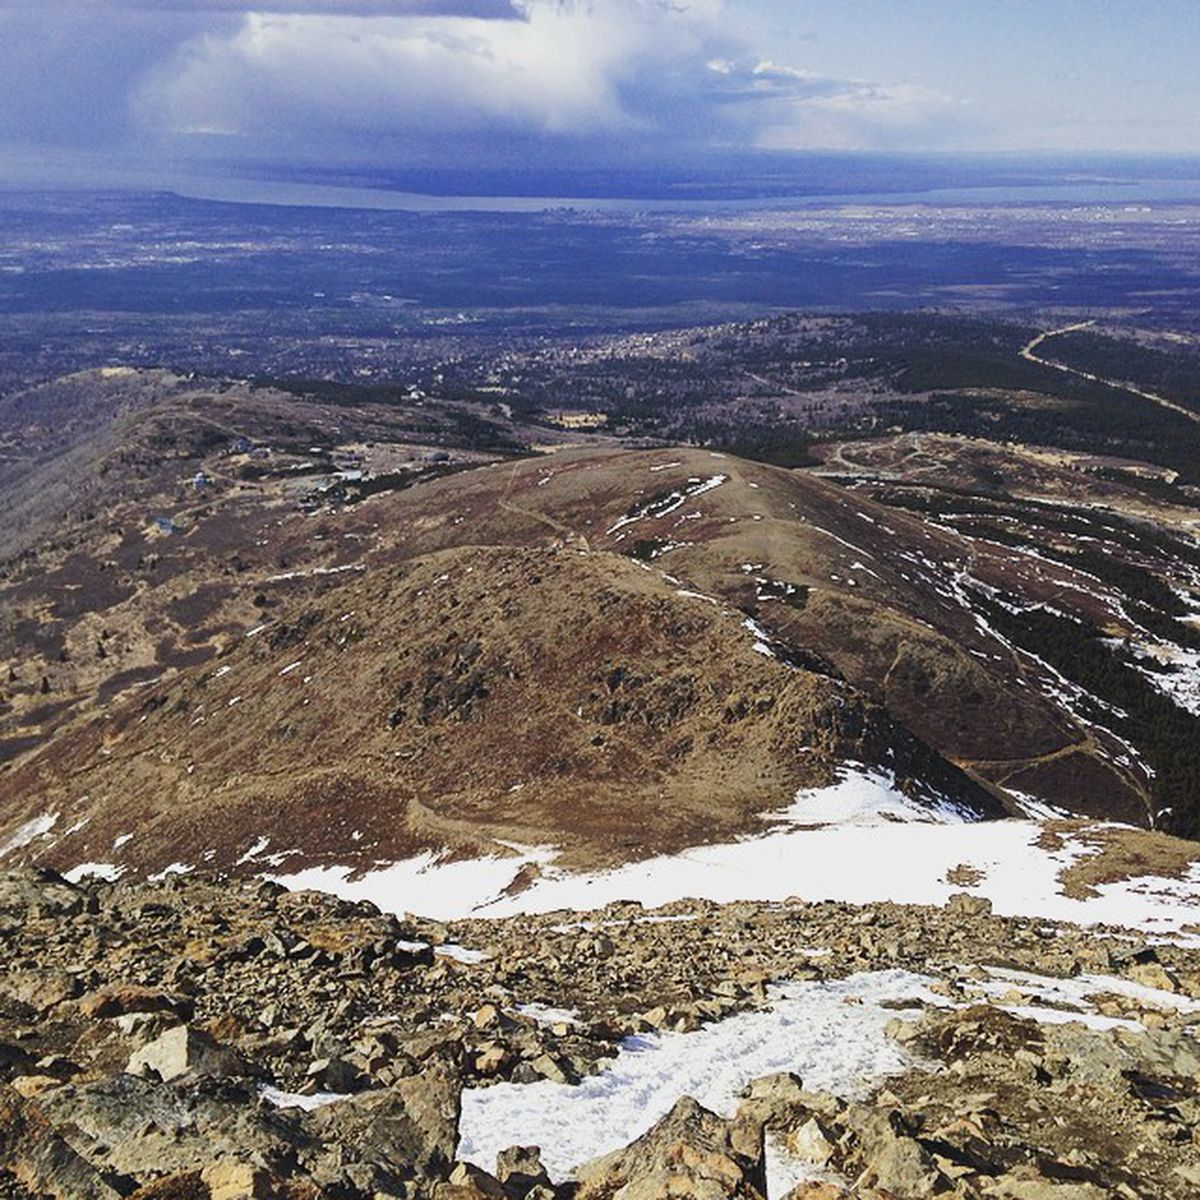 The view from partway up Flattop Mountain on April 28, 2015. (Vicky Ho / Alaska Dispatch News)